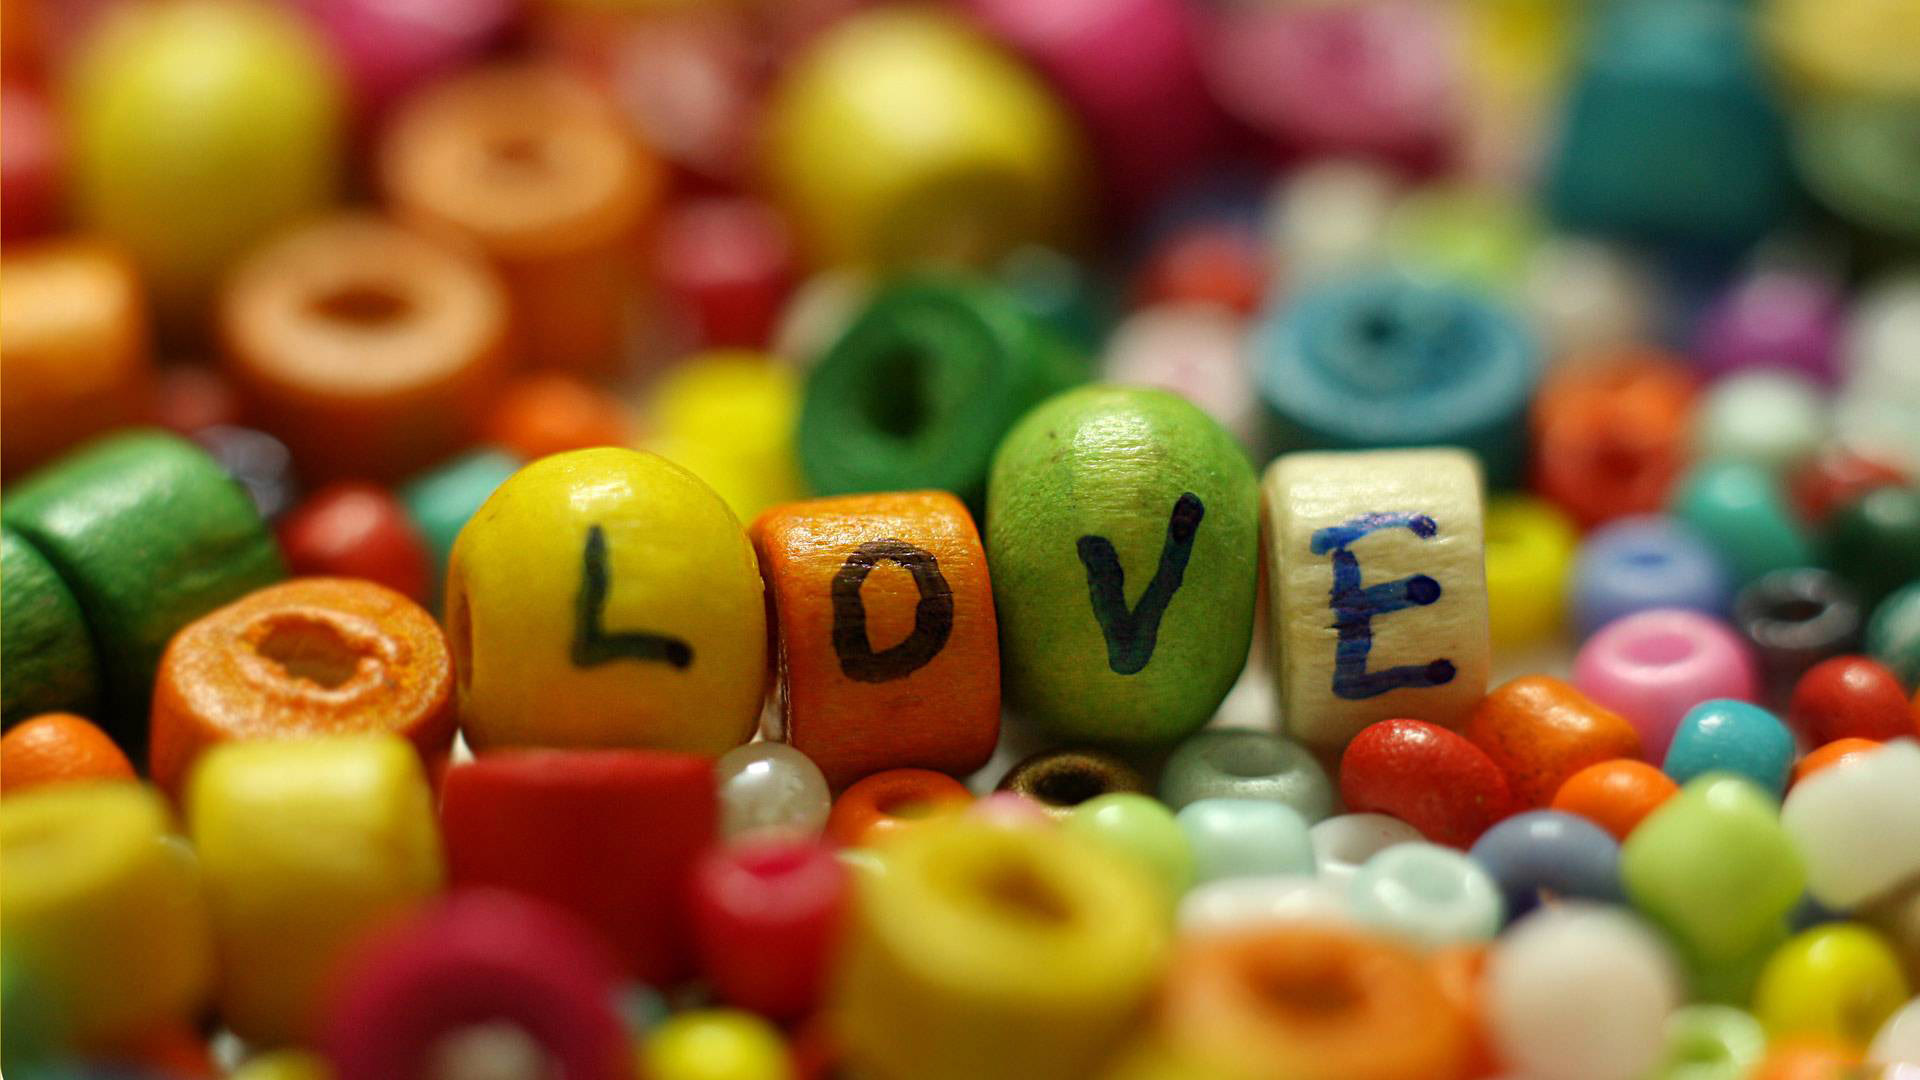 Love Colorful Wallpapers HD Wallpapers 1920x1080